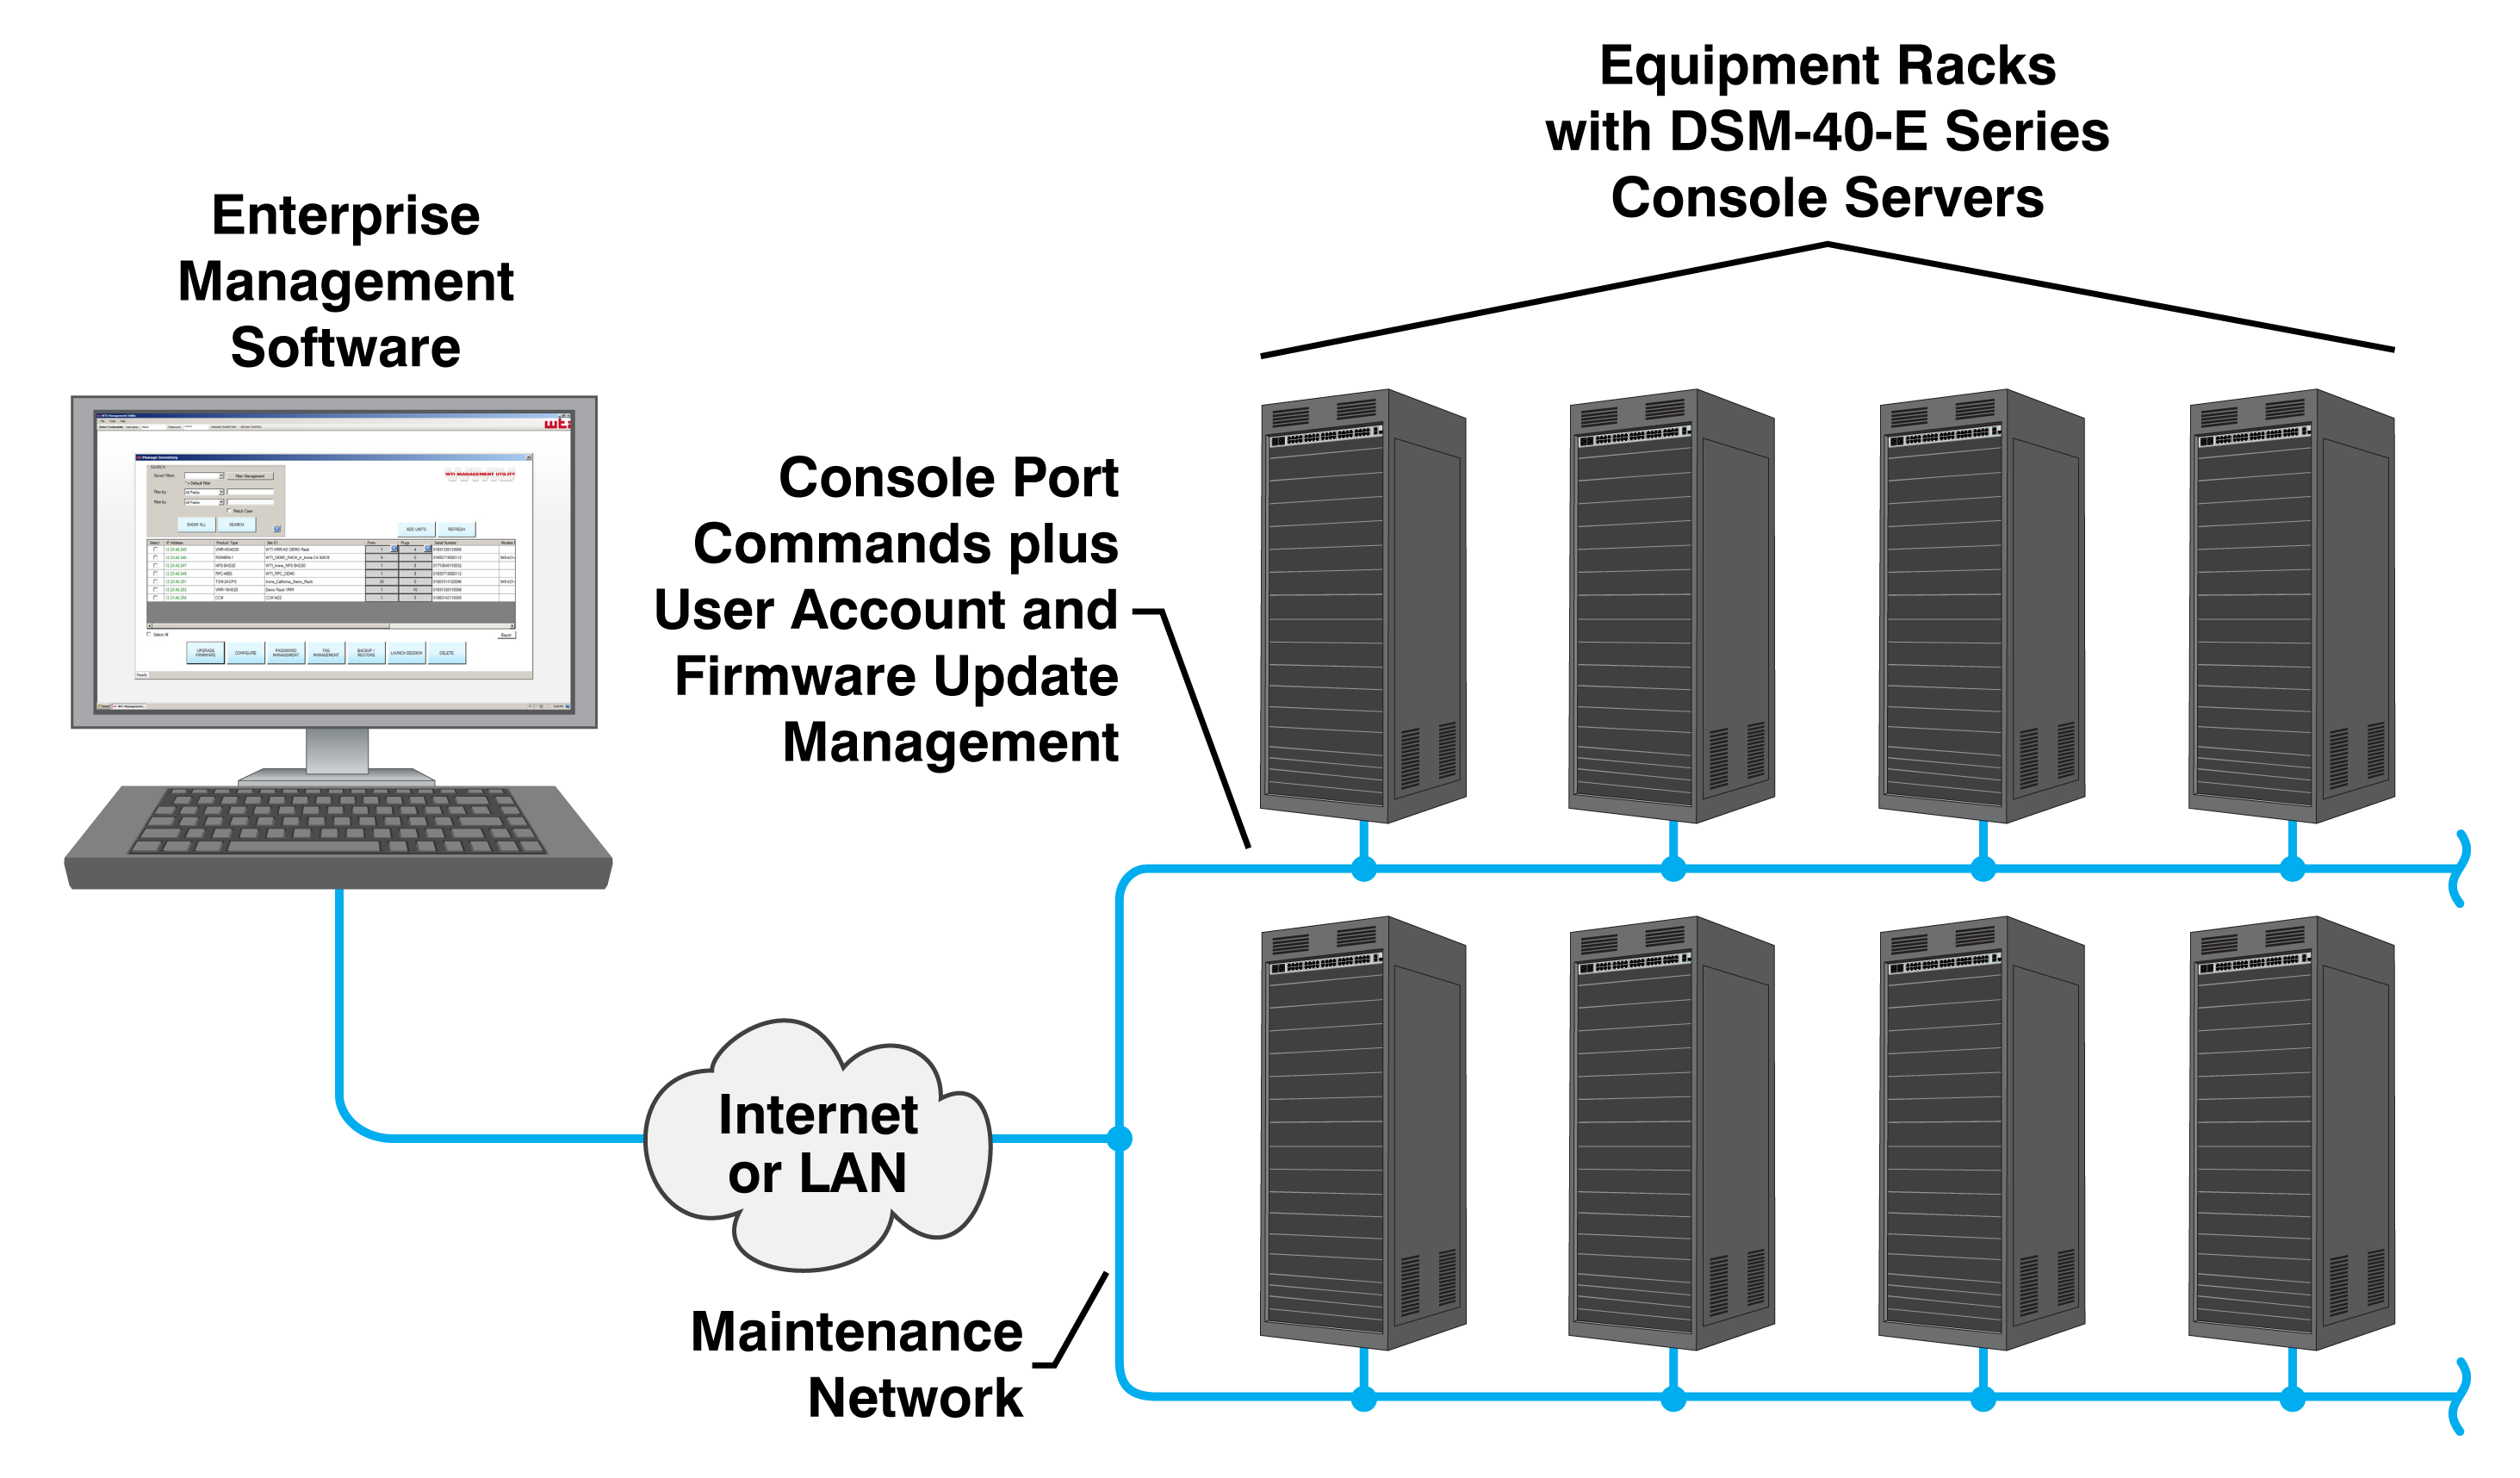 dual ethernet console server failover application with Centralized Management Software